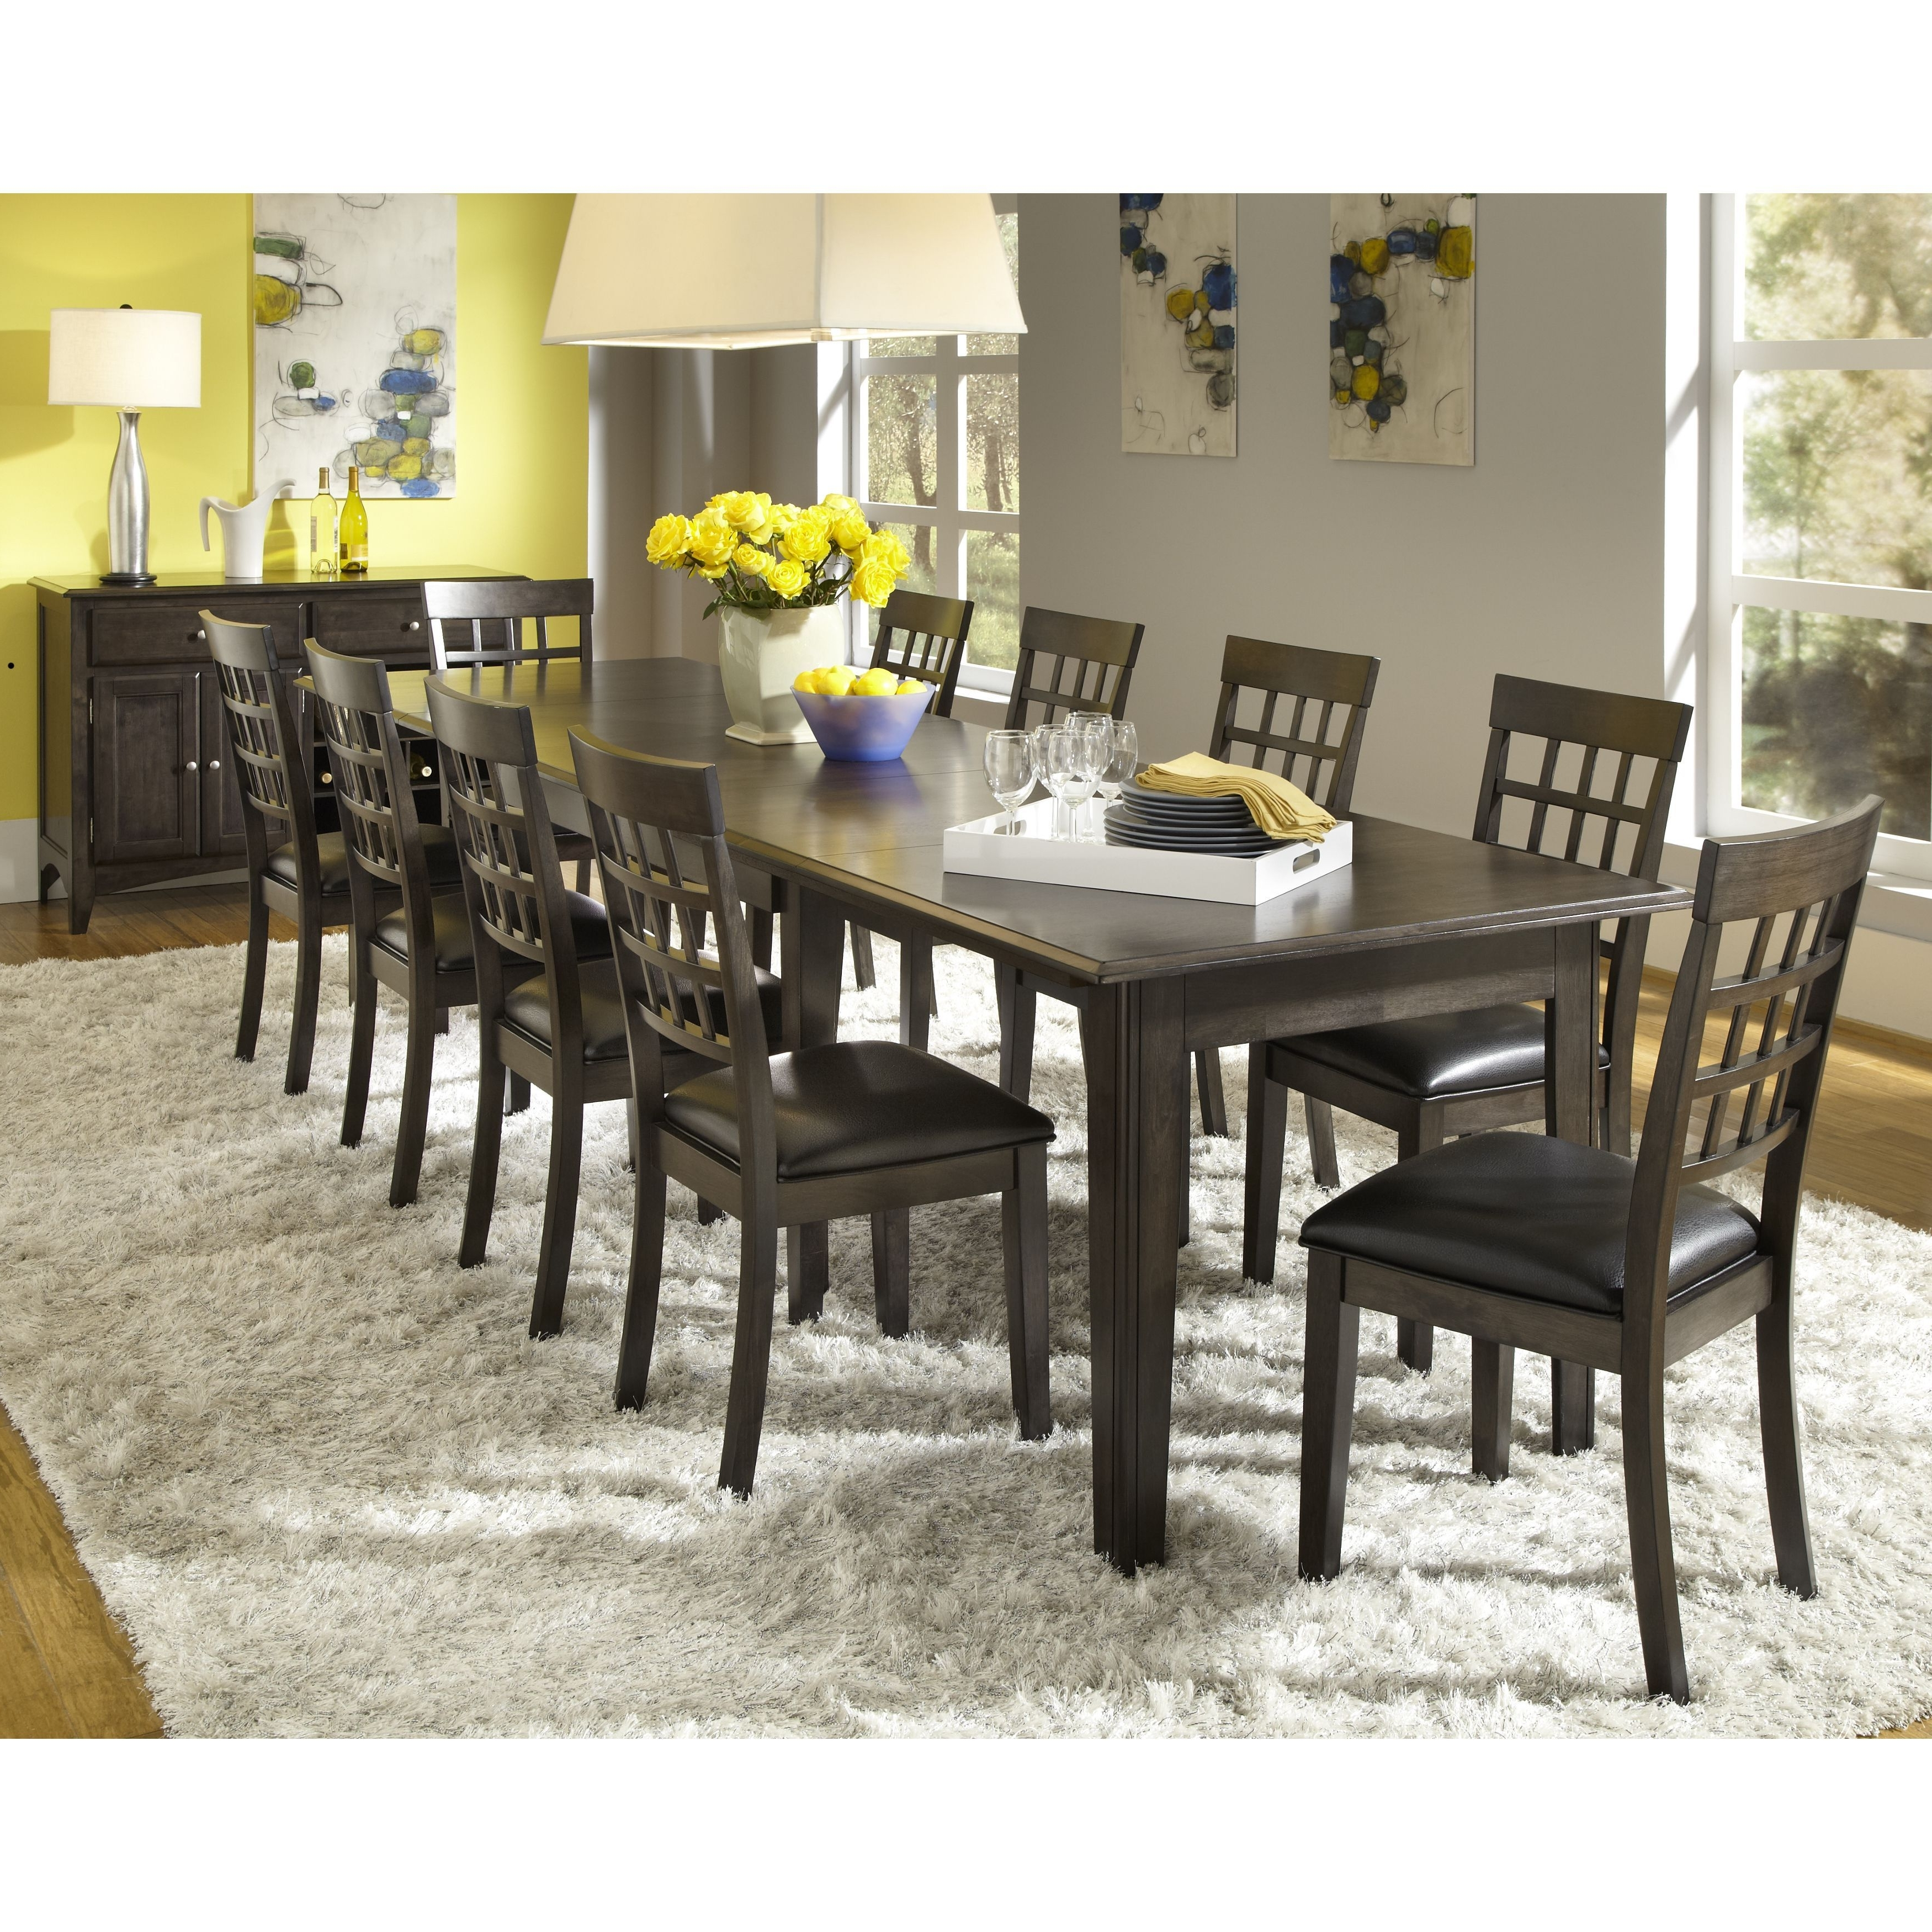 2017 Norwood 7 Piece Rectangle Extension Dining Sets Regarding Simply Solid Corina Solid Wood 10 Piece Dining Collection (Dining (Gallery 7 of 25)